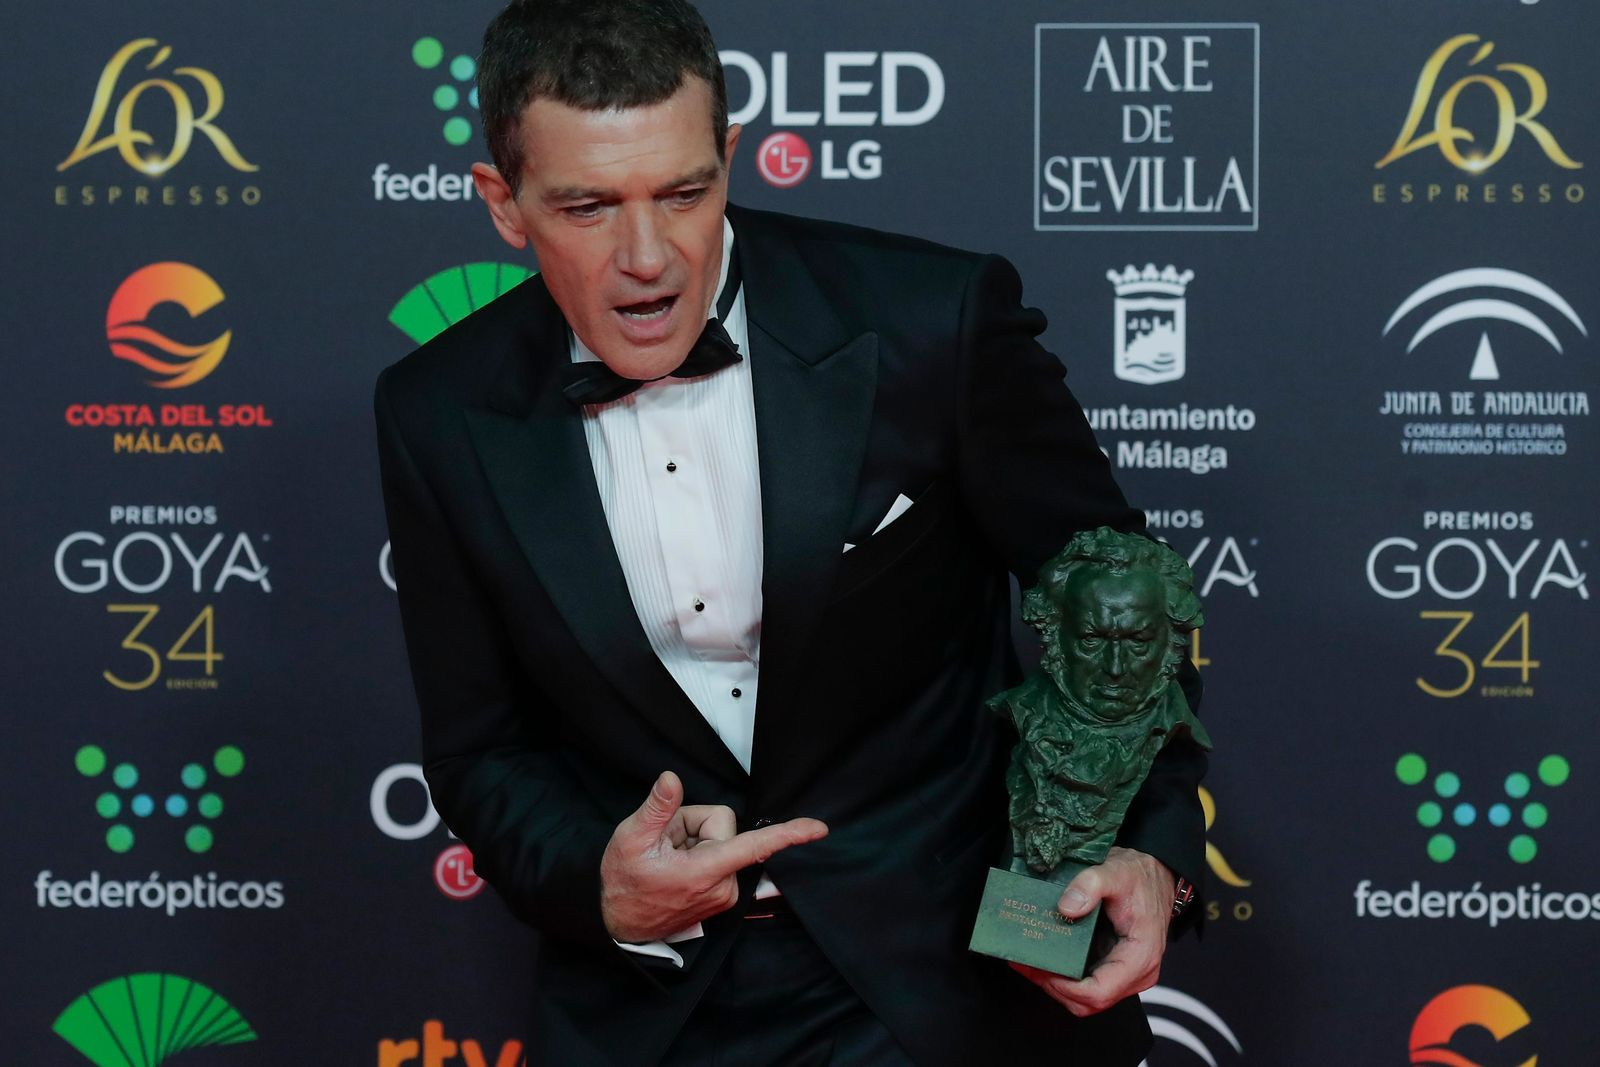 "Spanish actor Antonio Banderas poses with his trophy after winning the best leading actor award for ""Dolor y gloria"" during the Goya Film Awards Ceremony in Malaga, southern Spain, early Sunday, Jan. 26, 2020. The annual Goya Awards are Spain's main national film awards. (AP Photo/Manu Fernandez)"